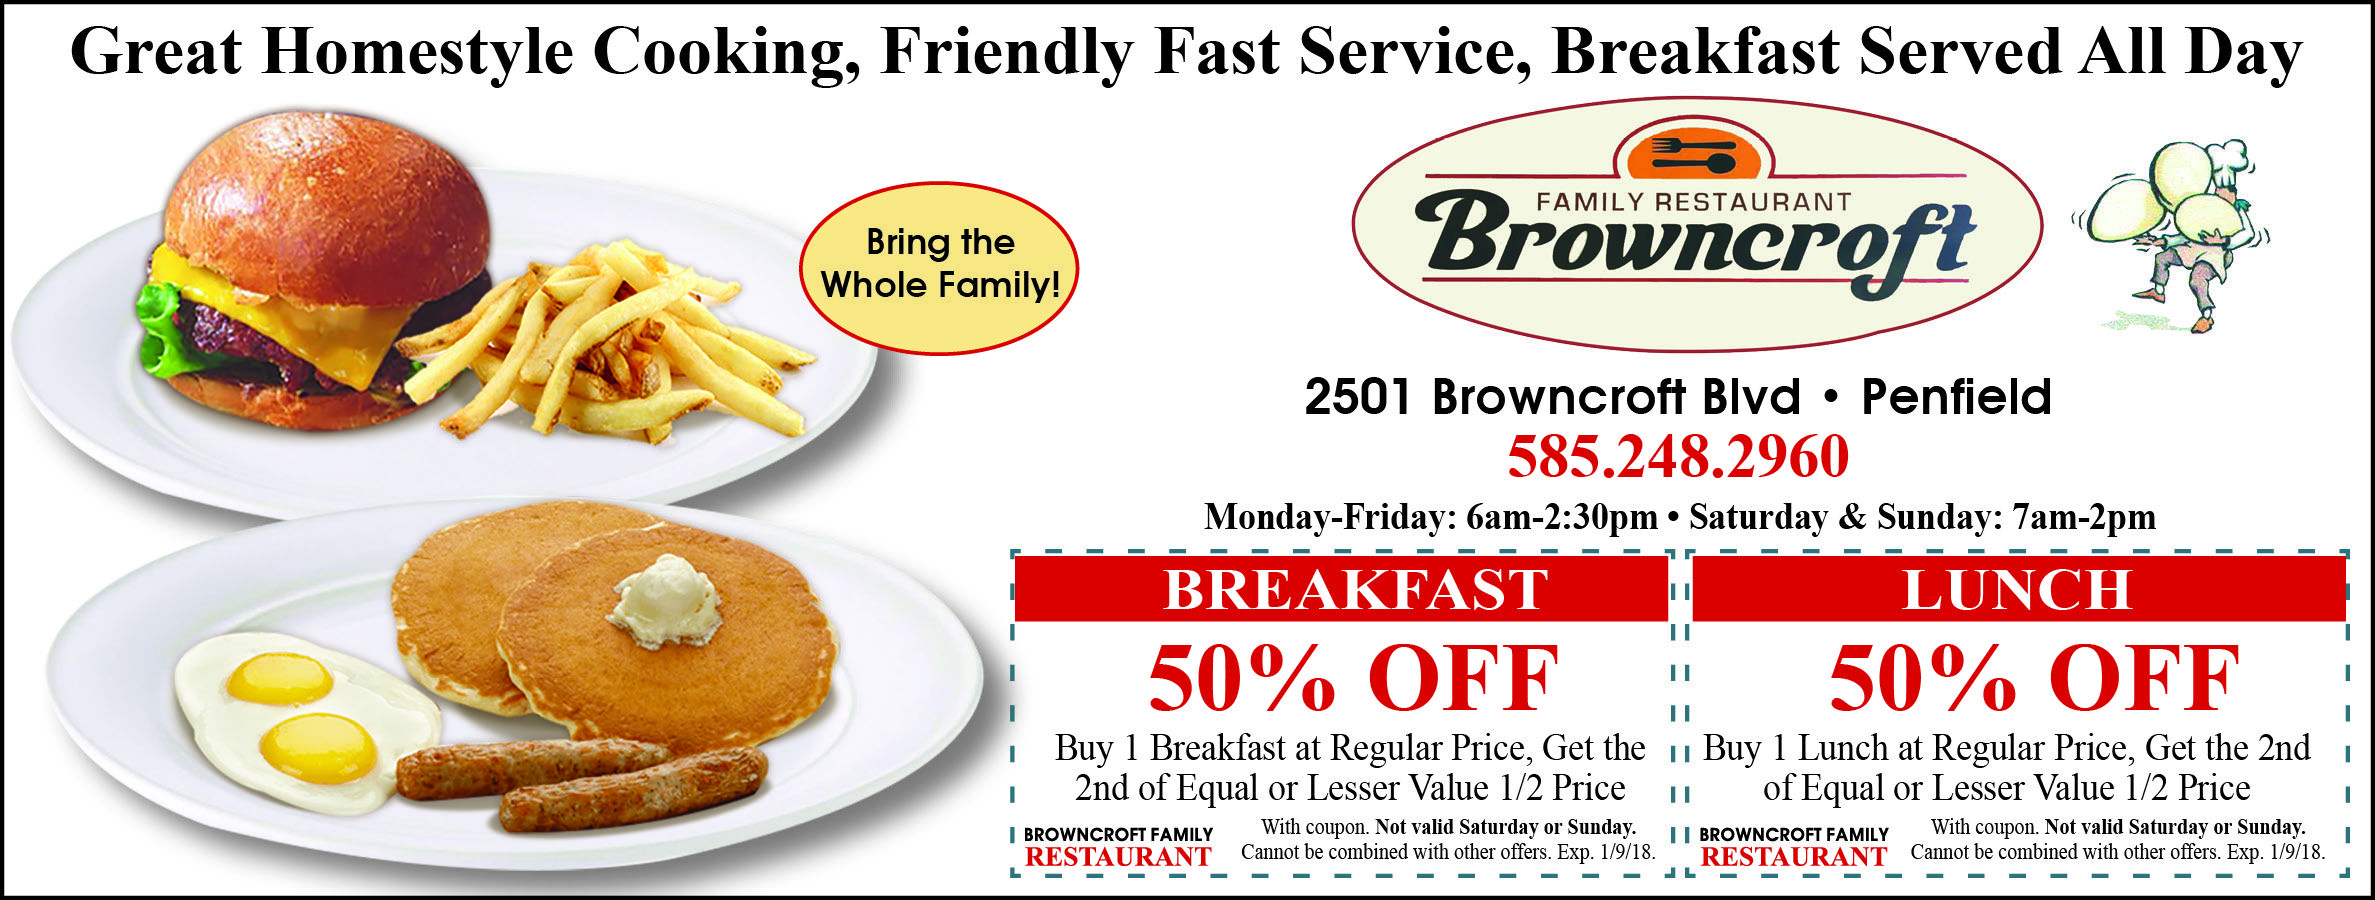 Browncroft Family Restaurant